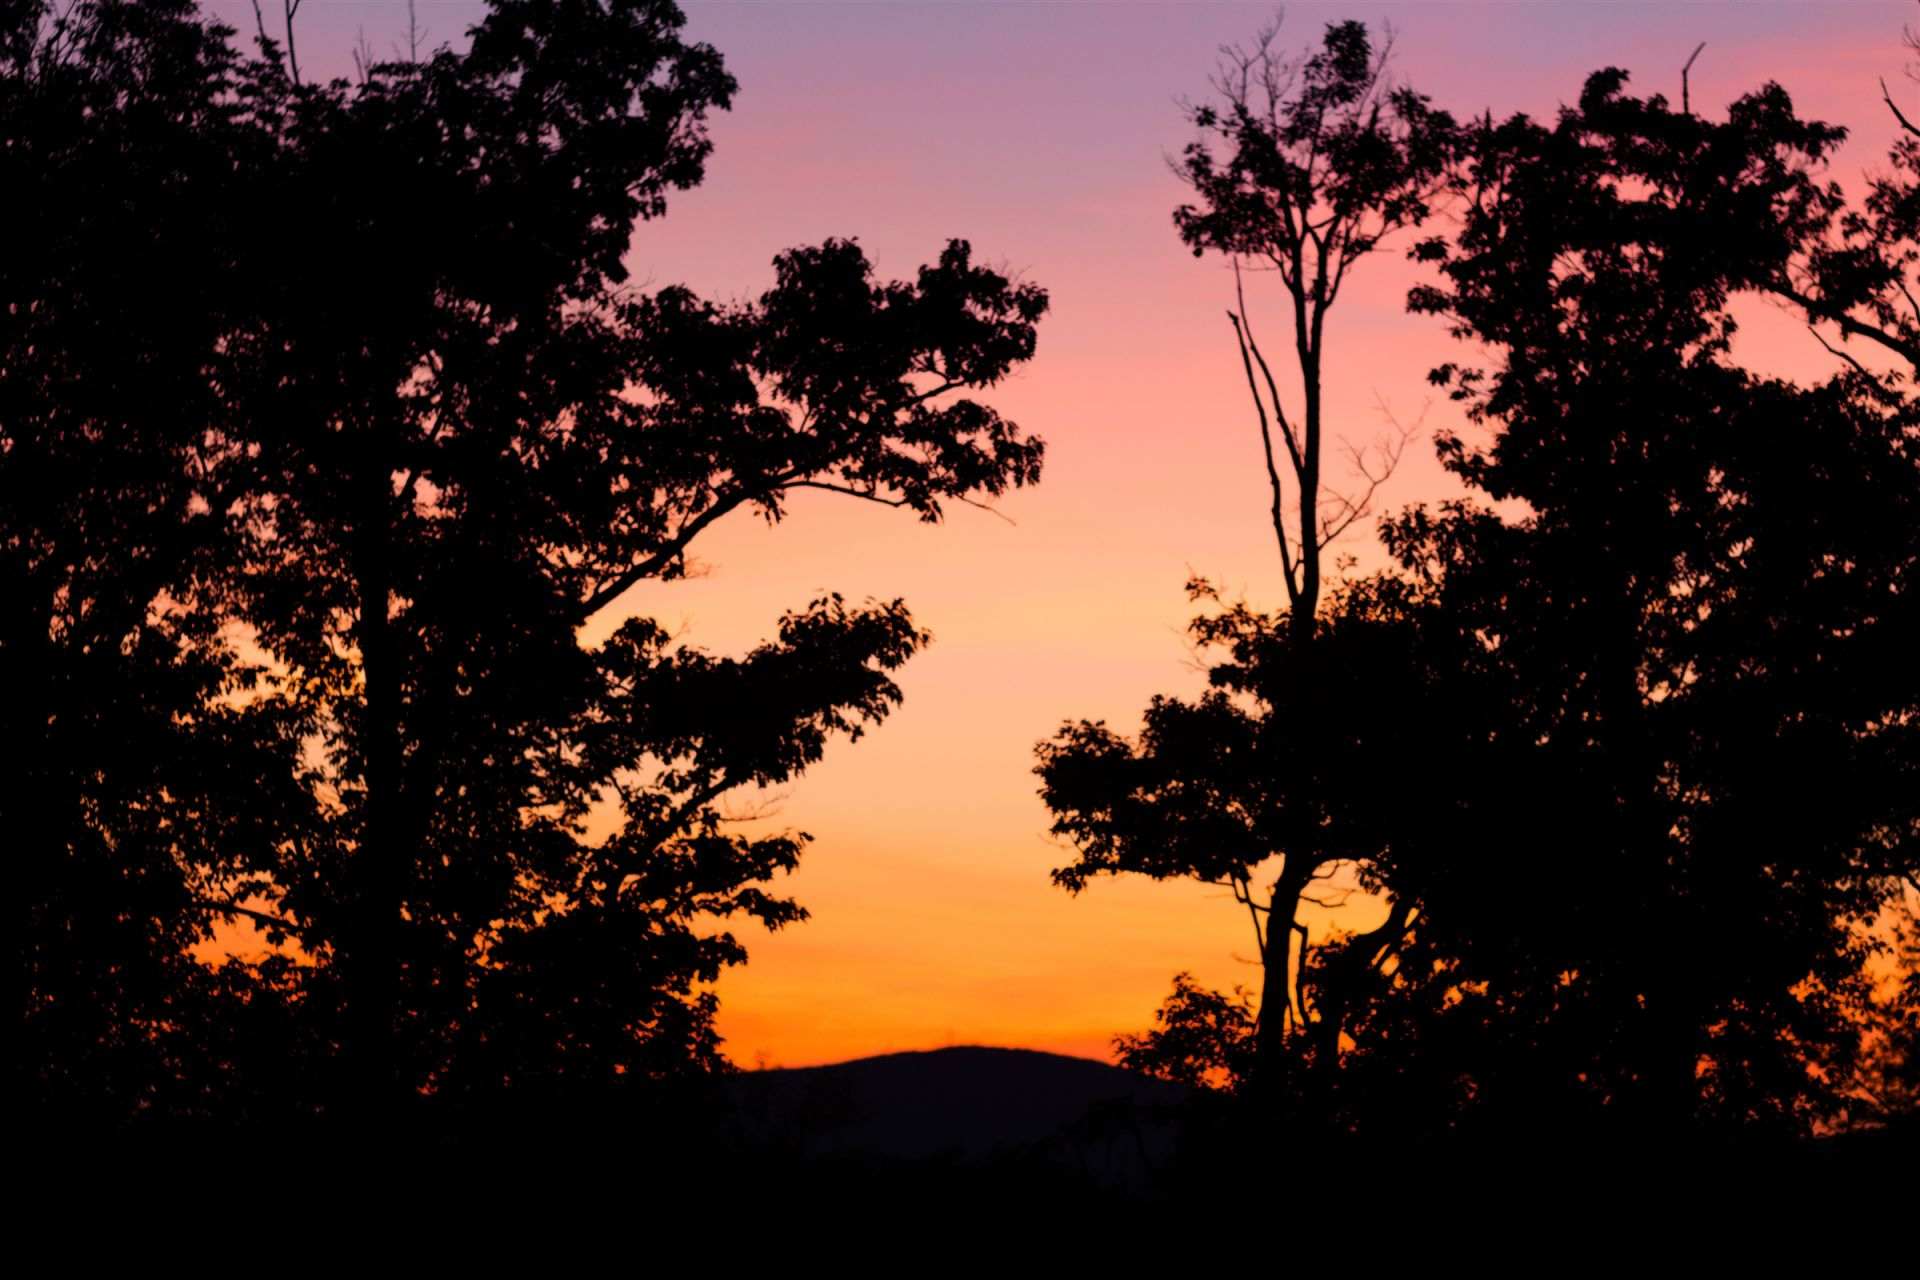 A glimpse of the Wapack Mountain Range from the Upper Gardens at sunset.